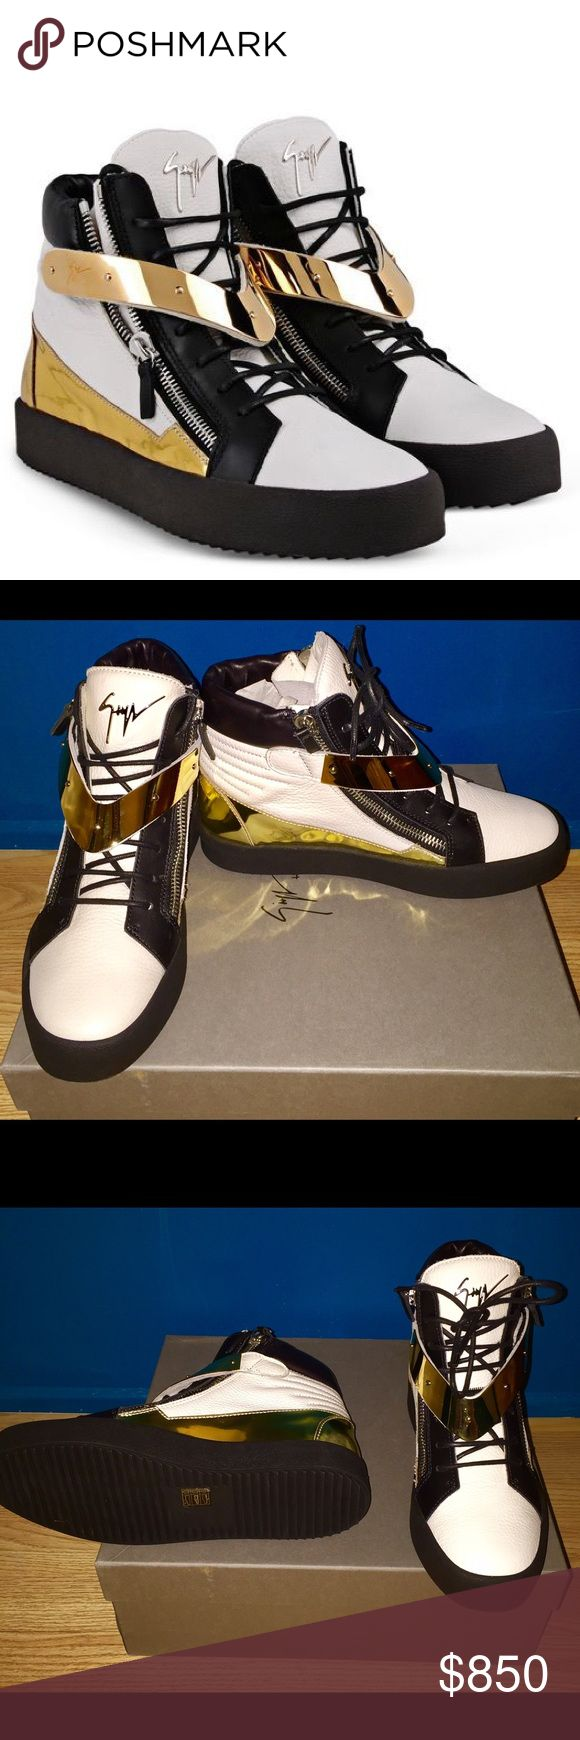 Giuseppe Zanotti - Men High-top sneaker. BRAND NEW. Giuseppe Zanotti - Men High-top sneaker. Black and white calfskin leather with gold mirror patent trim and V-strap plate. Giuseppe Zanotti Shoes Sneakers